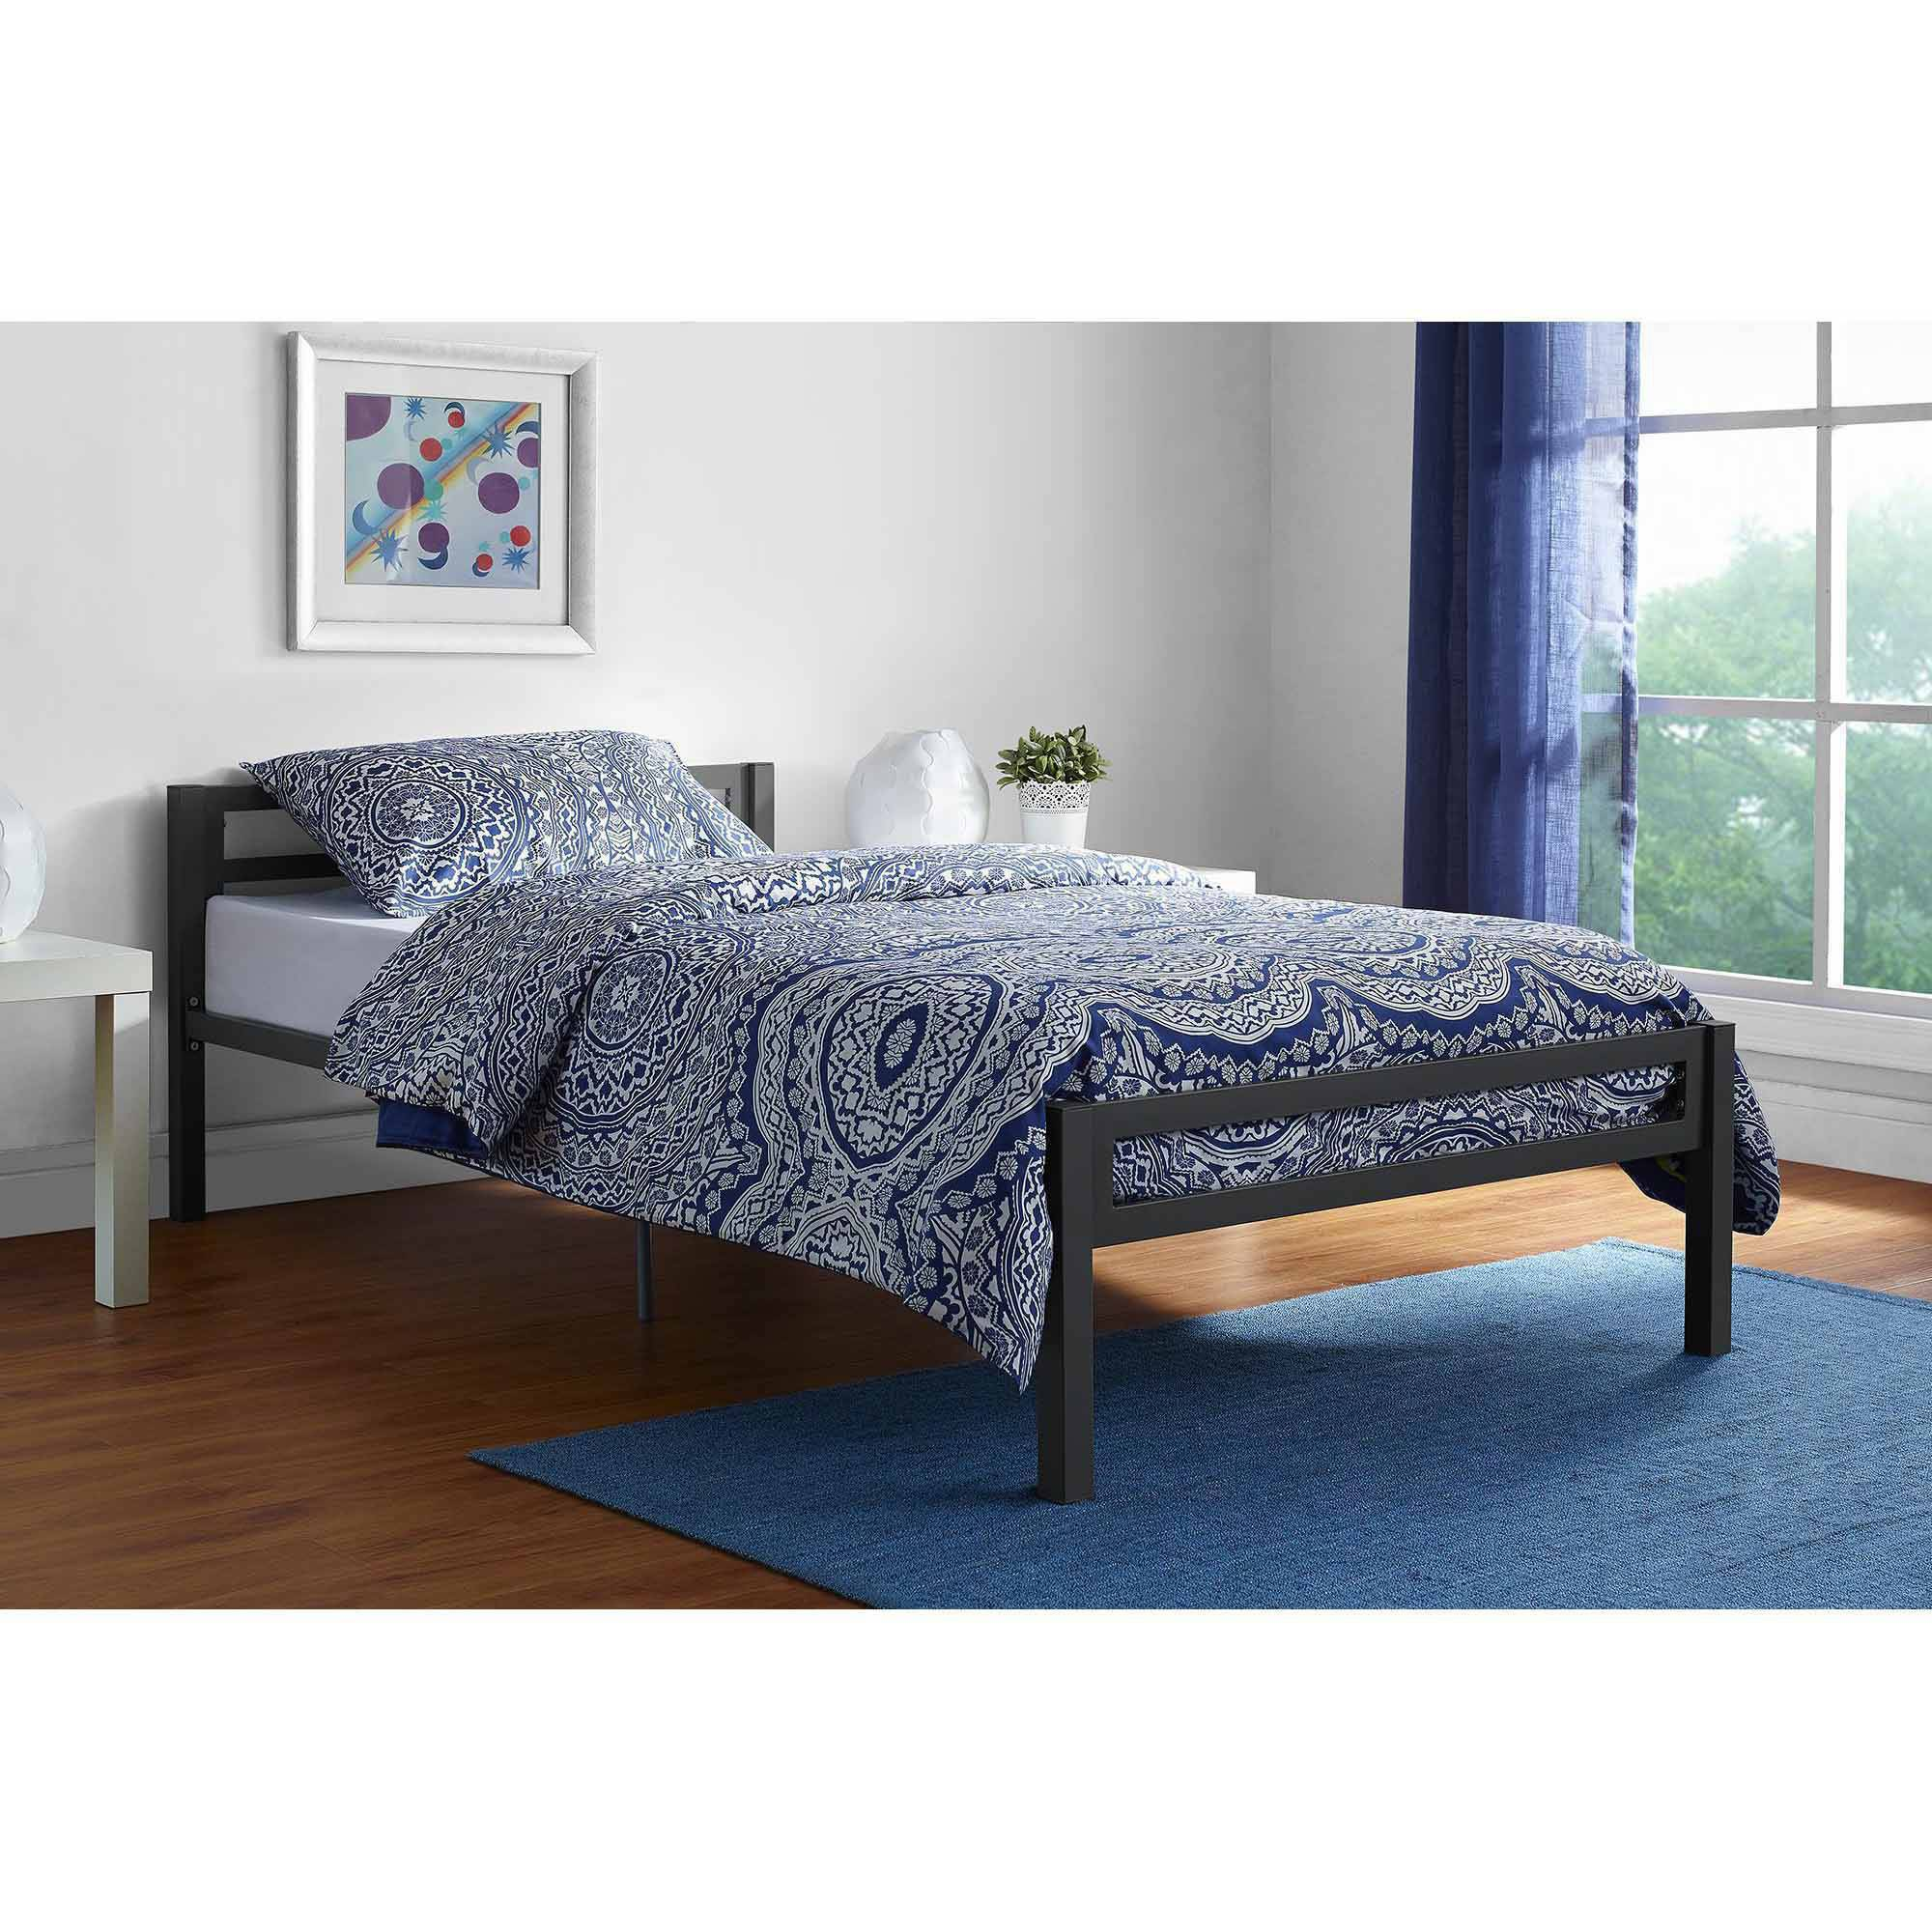 mainstays 4061019we bed twin size metal frame modern